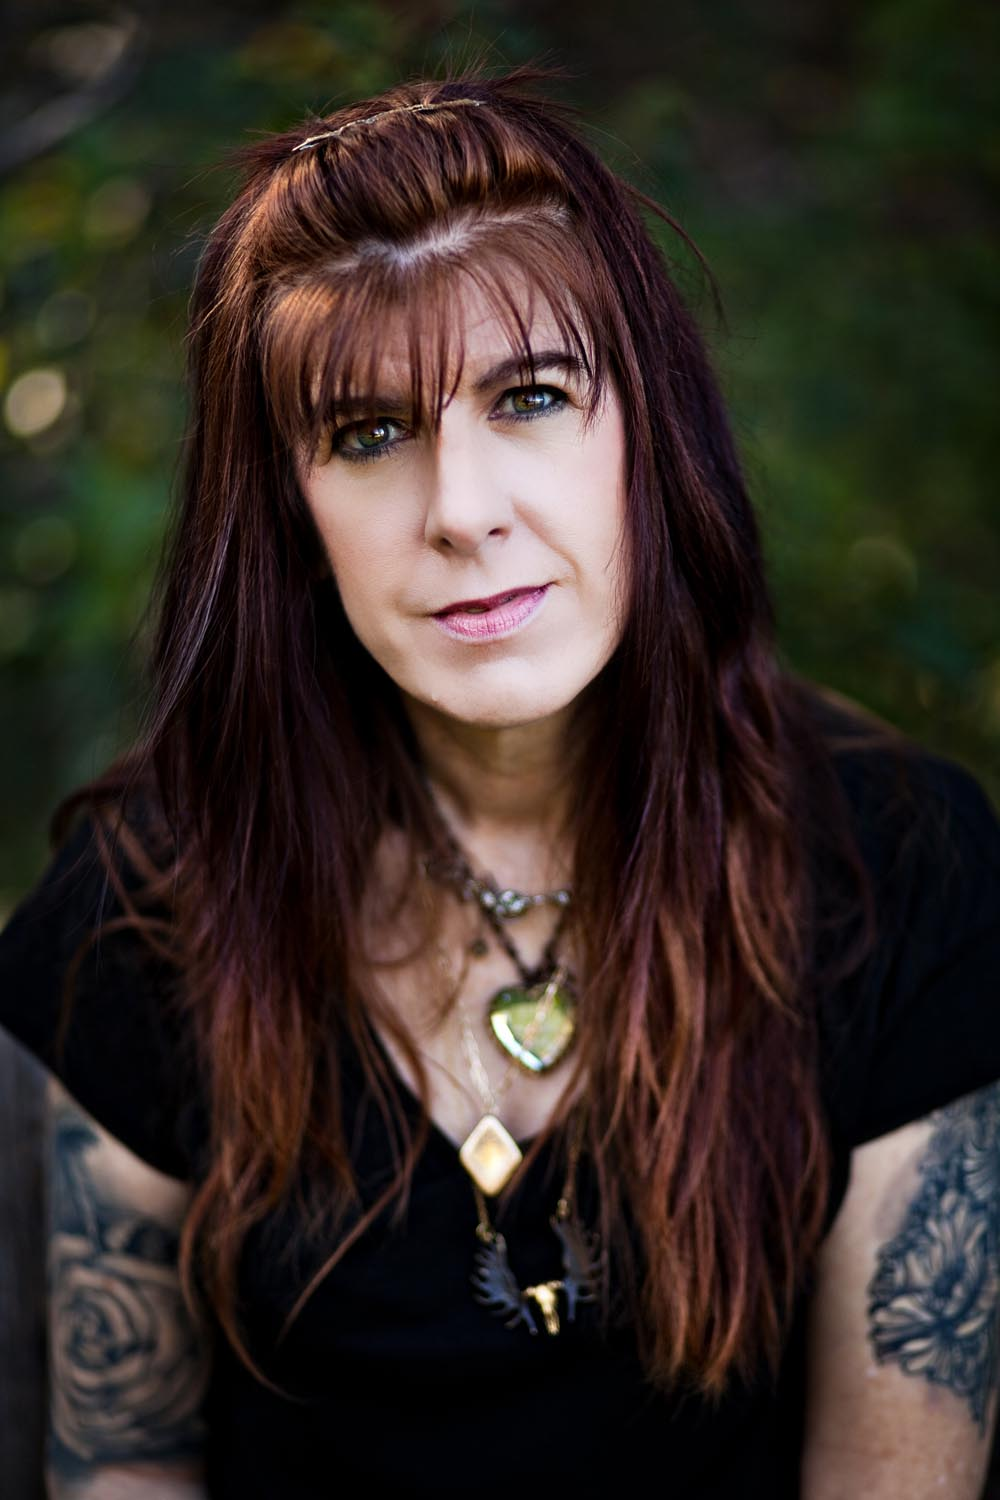 "I met Brenda Hughes in Austin in November 2013. Everything about her struck me, from her eyes, to her tattoos, to her ability to drop Bible quotes like a boss, to her immense, radiating kindness to, of course, her incredible story of resilience.  I stay in touch with about 95% of the people who have been a part of Live Through This. When we meet, we're not just talking about suicide, about how we each fought through our own sea of darkness. That's an entry point, a place of mutual understanding between survivor and artist(/survivor). We talk about life, about what happens after. We laugh. We're fast friends.   Brenda writes these amazing stories on Facebook—little anecdotes about her life. She ends every single one with, ""I love you, I need you,"" to remind her people that they are worthy, that they are valued, that they are necessary, that they're not alone. Because we all forget sometimes. Sometimes we need a reminder, a spark of light, a nod of understanding, a Brenda.  Dec 5, 2015"